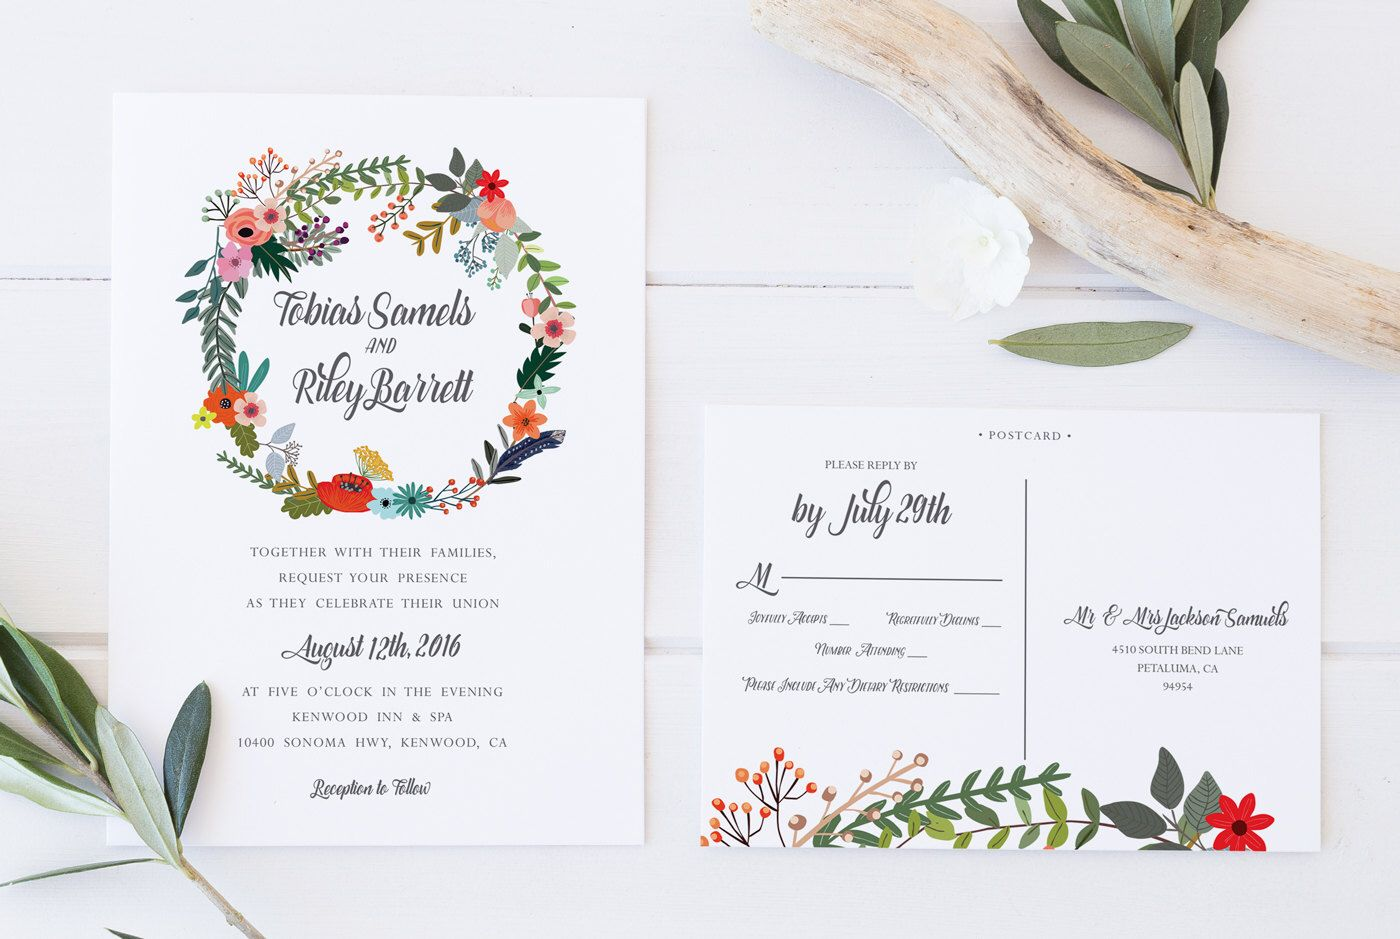 Printable Wedding Invitation, DIY Wedding Invitation Kit, Wreath ...